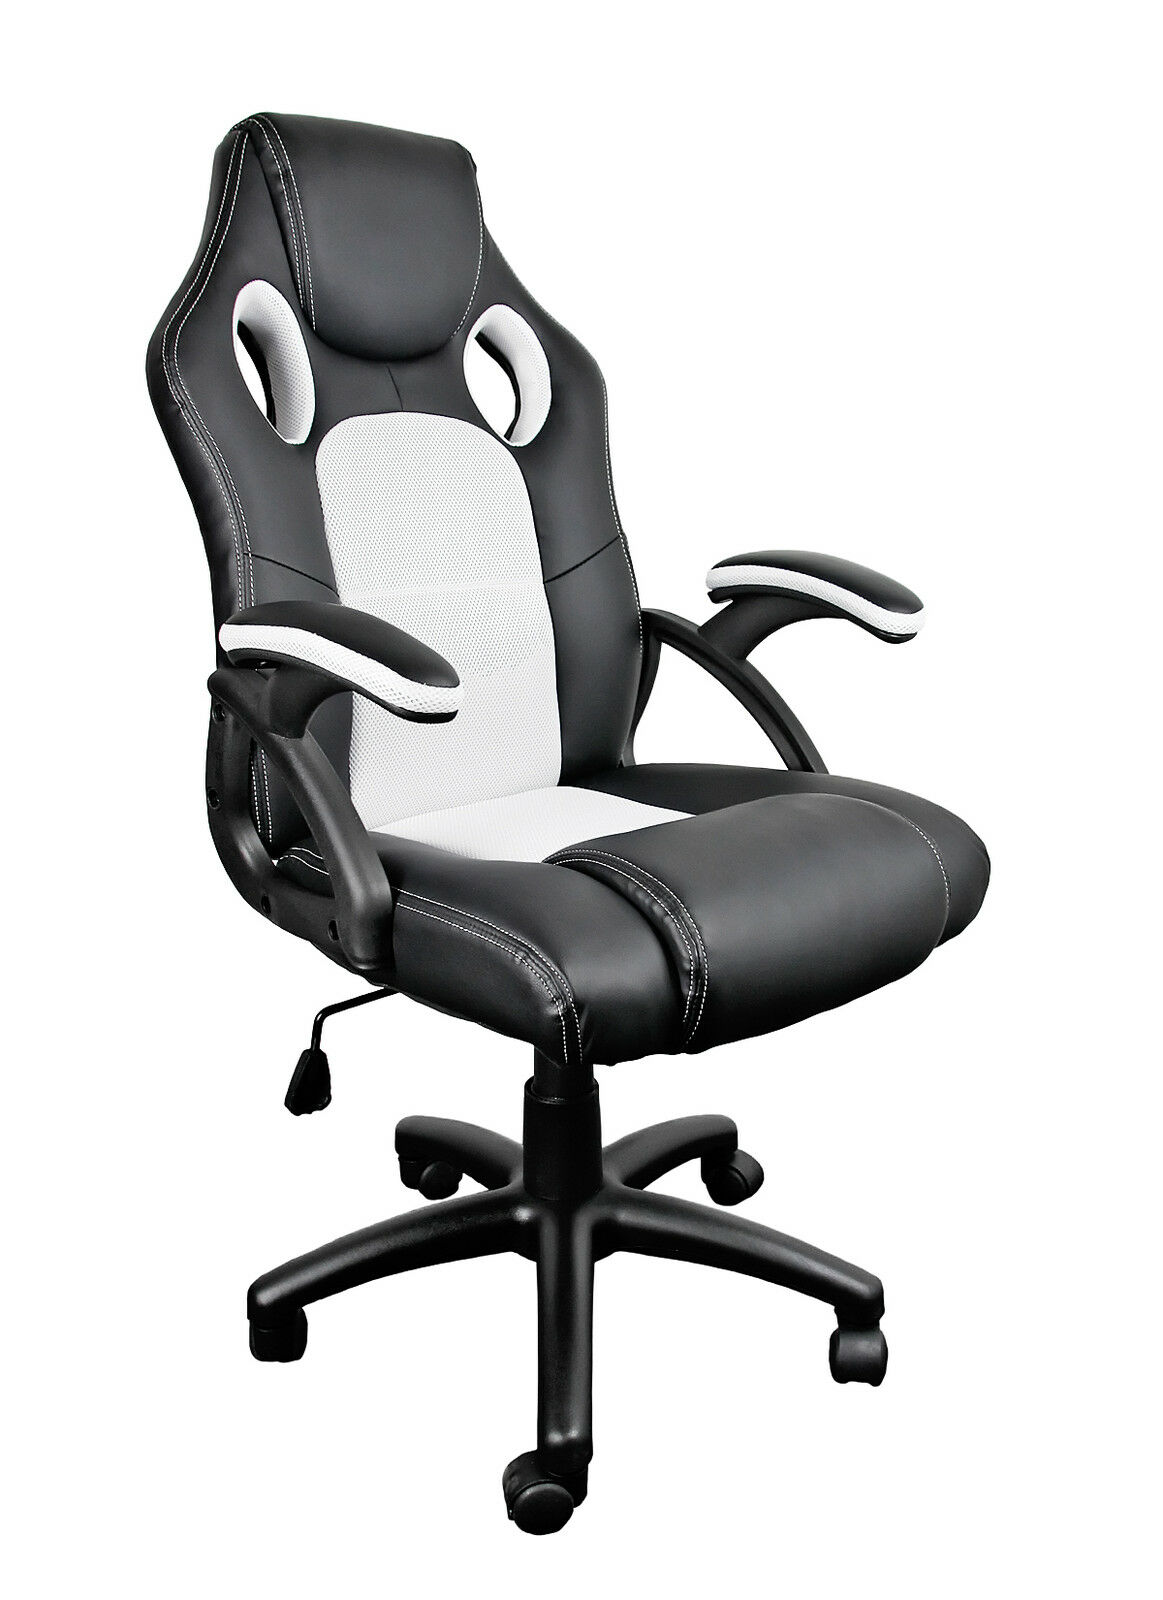 mesh gaming chair stackable outdoor chairs racing sport bucket computer desk office seat